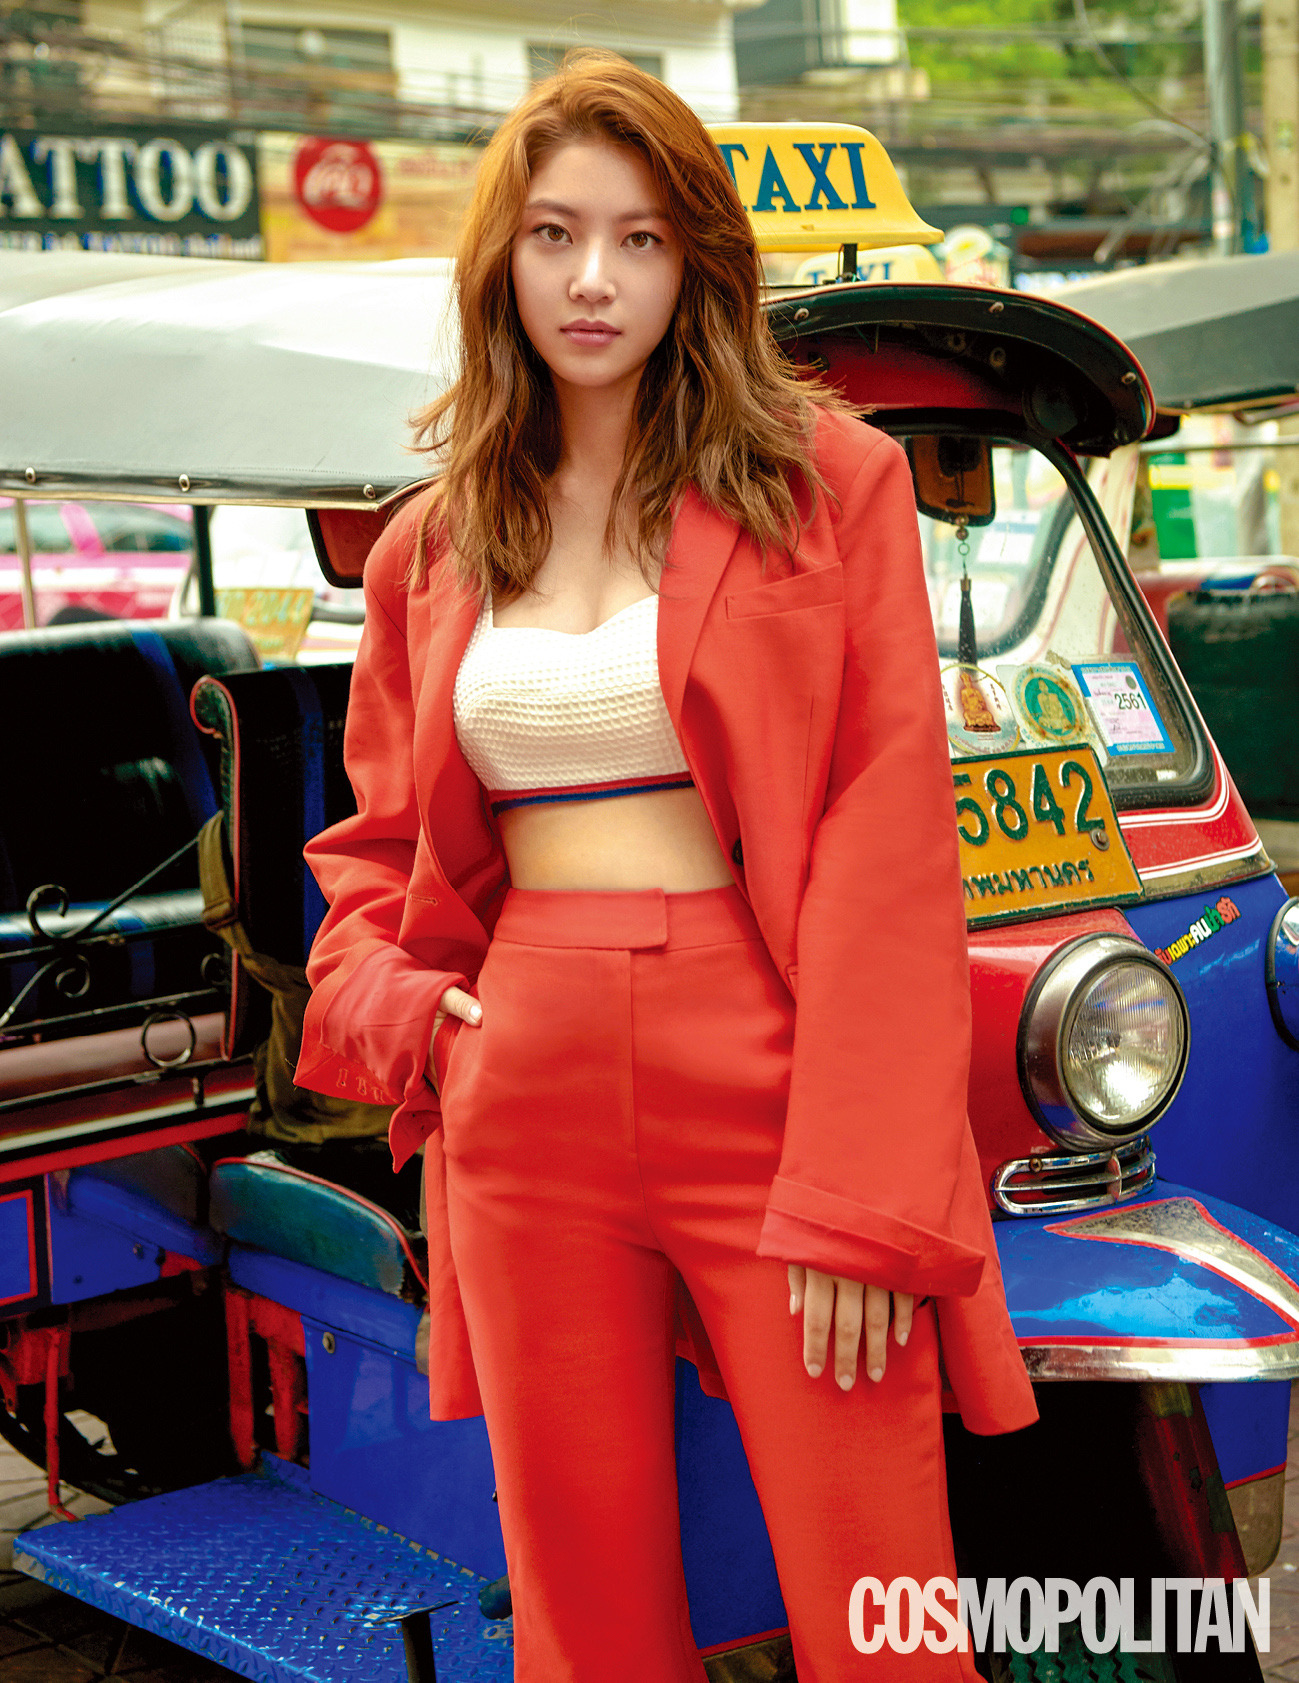 <p>(Seoul) Gang Goun Editor = June 4 KBS 2 Monthly Fire Drama ahead of the airing afternoon (Afternoon at 10 PM) <Are you a human? > Heroine Gong Seung-yeon showed a single photo book in Bangkok, Thailand through the June issue of Cosmopolitan.</p><p>Through this photo collection taken in Bangkok, Gong Seung-yeon boasts a distinctive smart leg line beauty, and at the same time, it showcased a vacation look suitable for traveling, matching stylish sunglasses and backs.</p><p>Gong Seung-yeon starred the first terrestrial wave drama Because you are a human? Is an artificial intelligence robot Human God III (Seo Kang-joon) and a hot-blood guard river sonbon (Gong Seung-yeon) s anti-national human spoof project as a material. Growing AI and Incarnation of Desire What Scoundrels Men Are! Through the contrast of, Im already gathering expectations in the work that I look back on true humanity.</p><p>Through gravure and advanced interviews, he always said It is very thin to himself. When I saw myself as a actor who was far away from discussing acting skills from the rookie era, there was always discussion of acting skill among me , as Gong Seung-yeons biggest weapon as an actor I also expressed a humble figure to the question asking what I think what if it brings advantages it is patience, perseverance, steady and how often do you leak in the night? On the other hand, as an actor citing Son Ye-jin senior in role model as something actor also spare no praise as an actor who really wants to resemble.</p><p>Meanwhile, Gong Seung-yeons frank fancy pleasant interview and photos that included vacation in Bangkok can be interviewed with the <Cosmopolitan> June issue via the cosmopolitan website.</p>